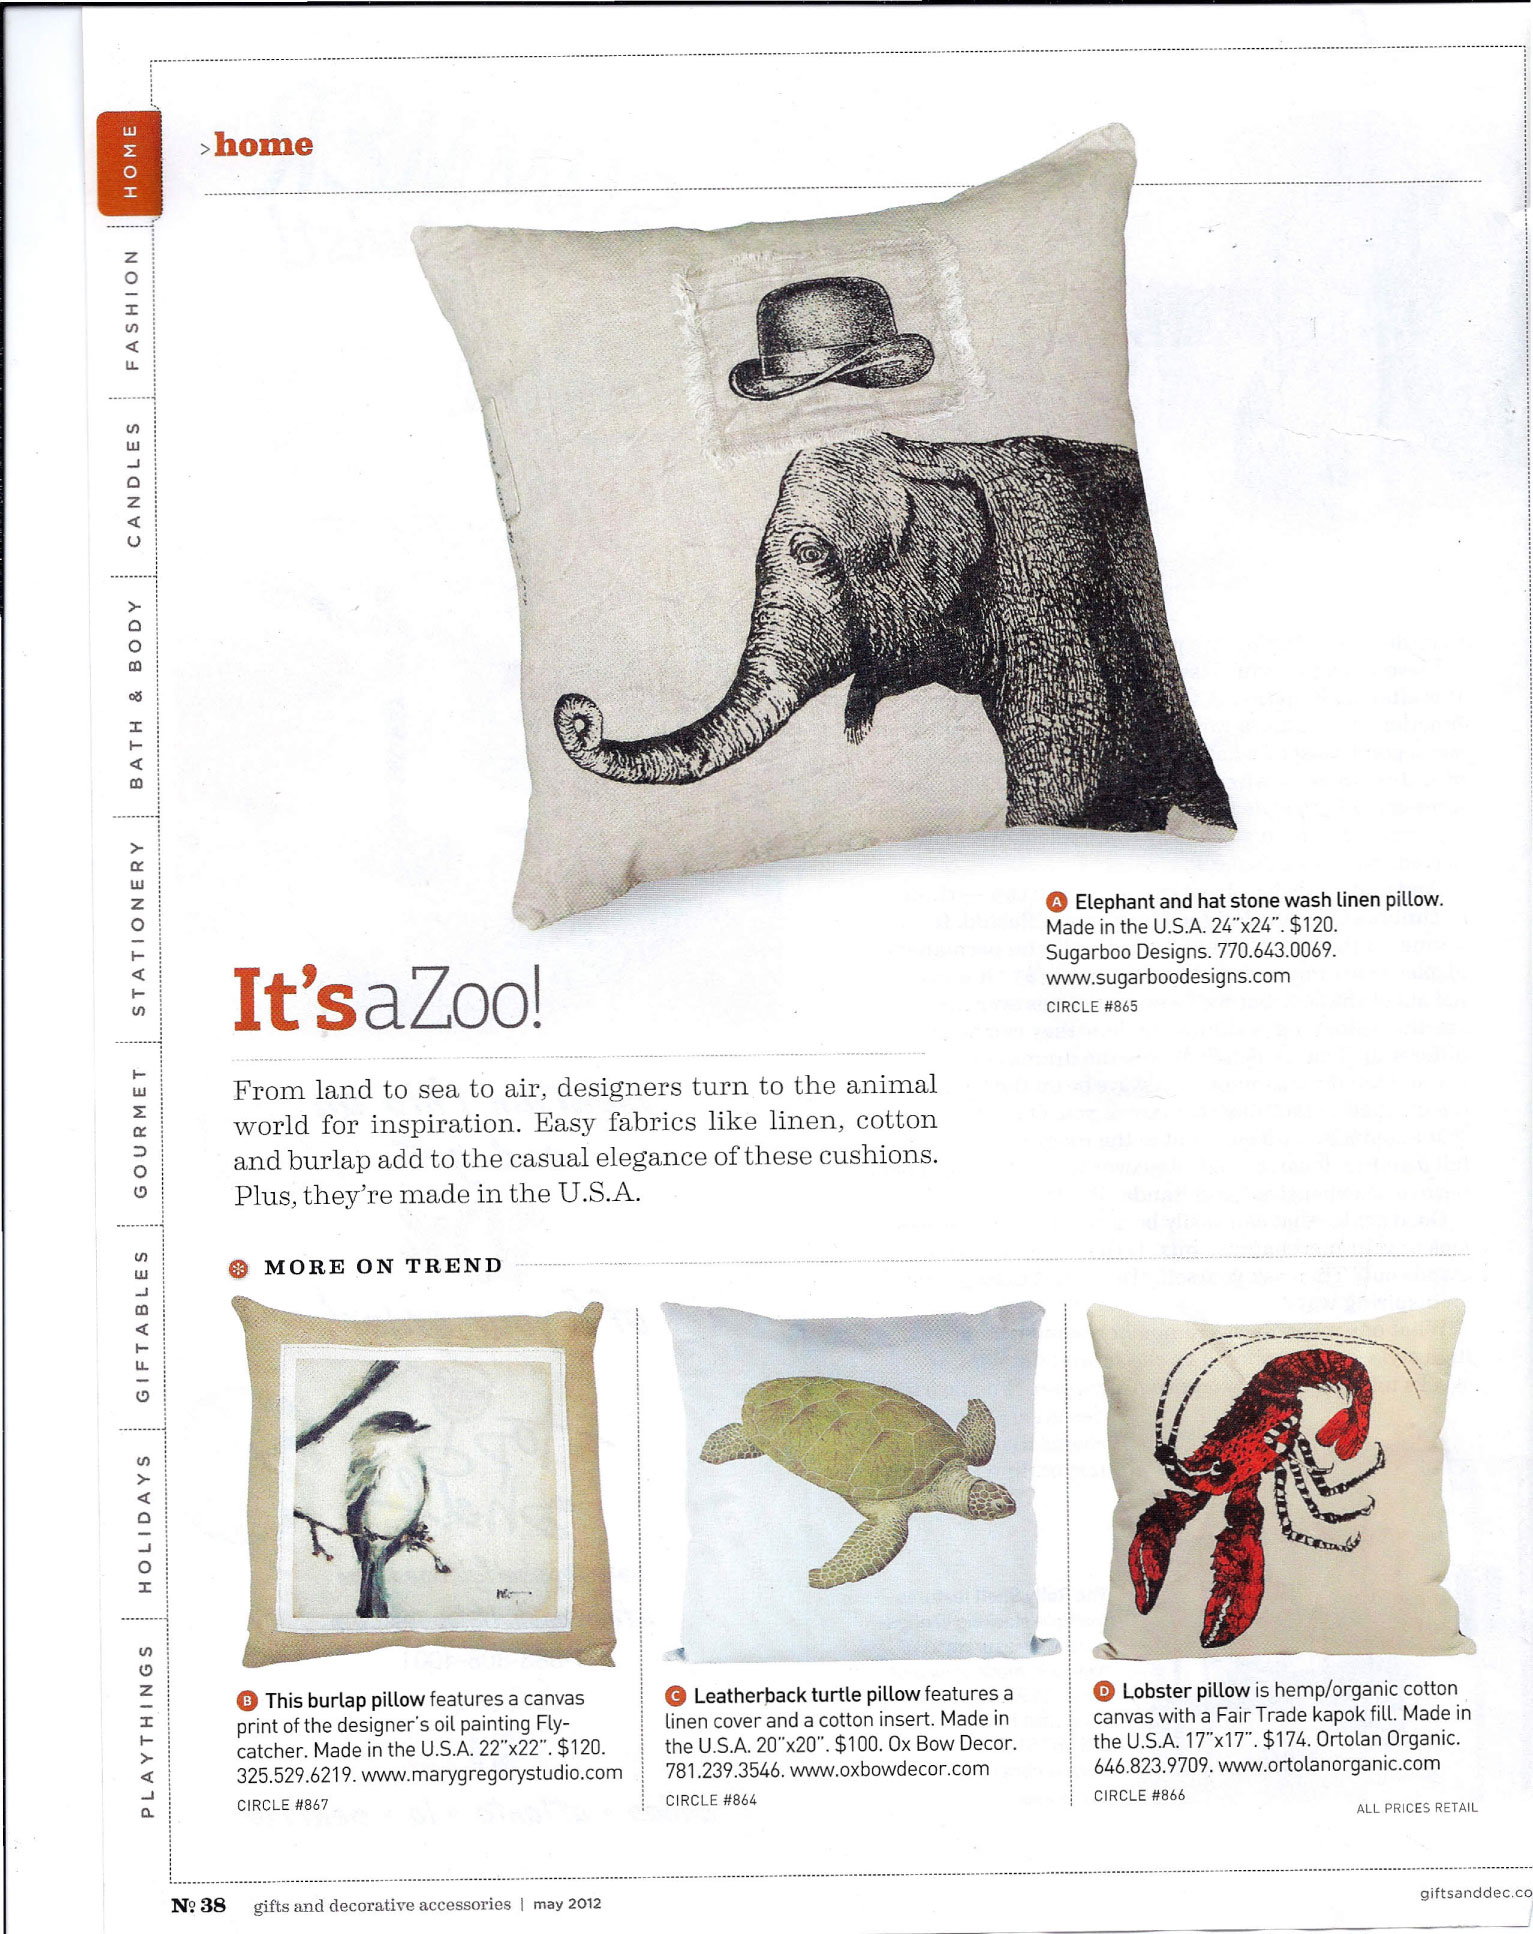 Gifts & Decorative Accessories - May 2012